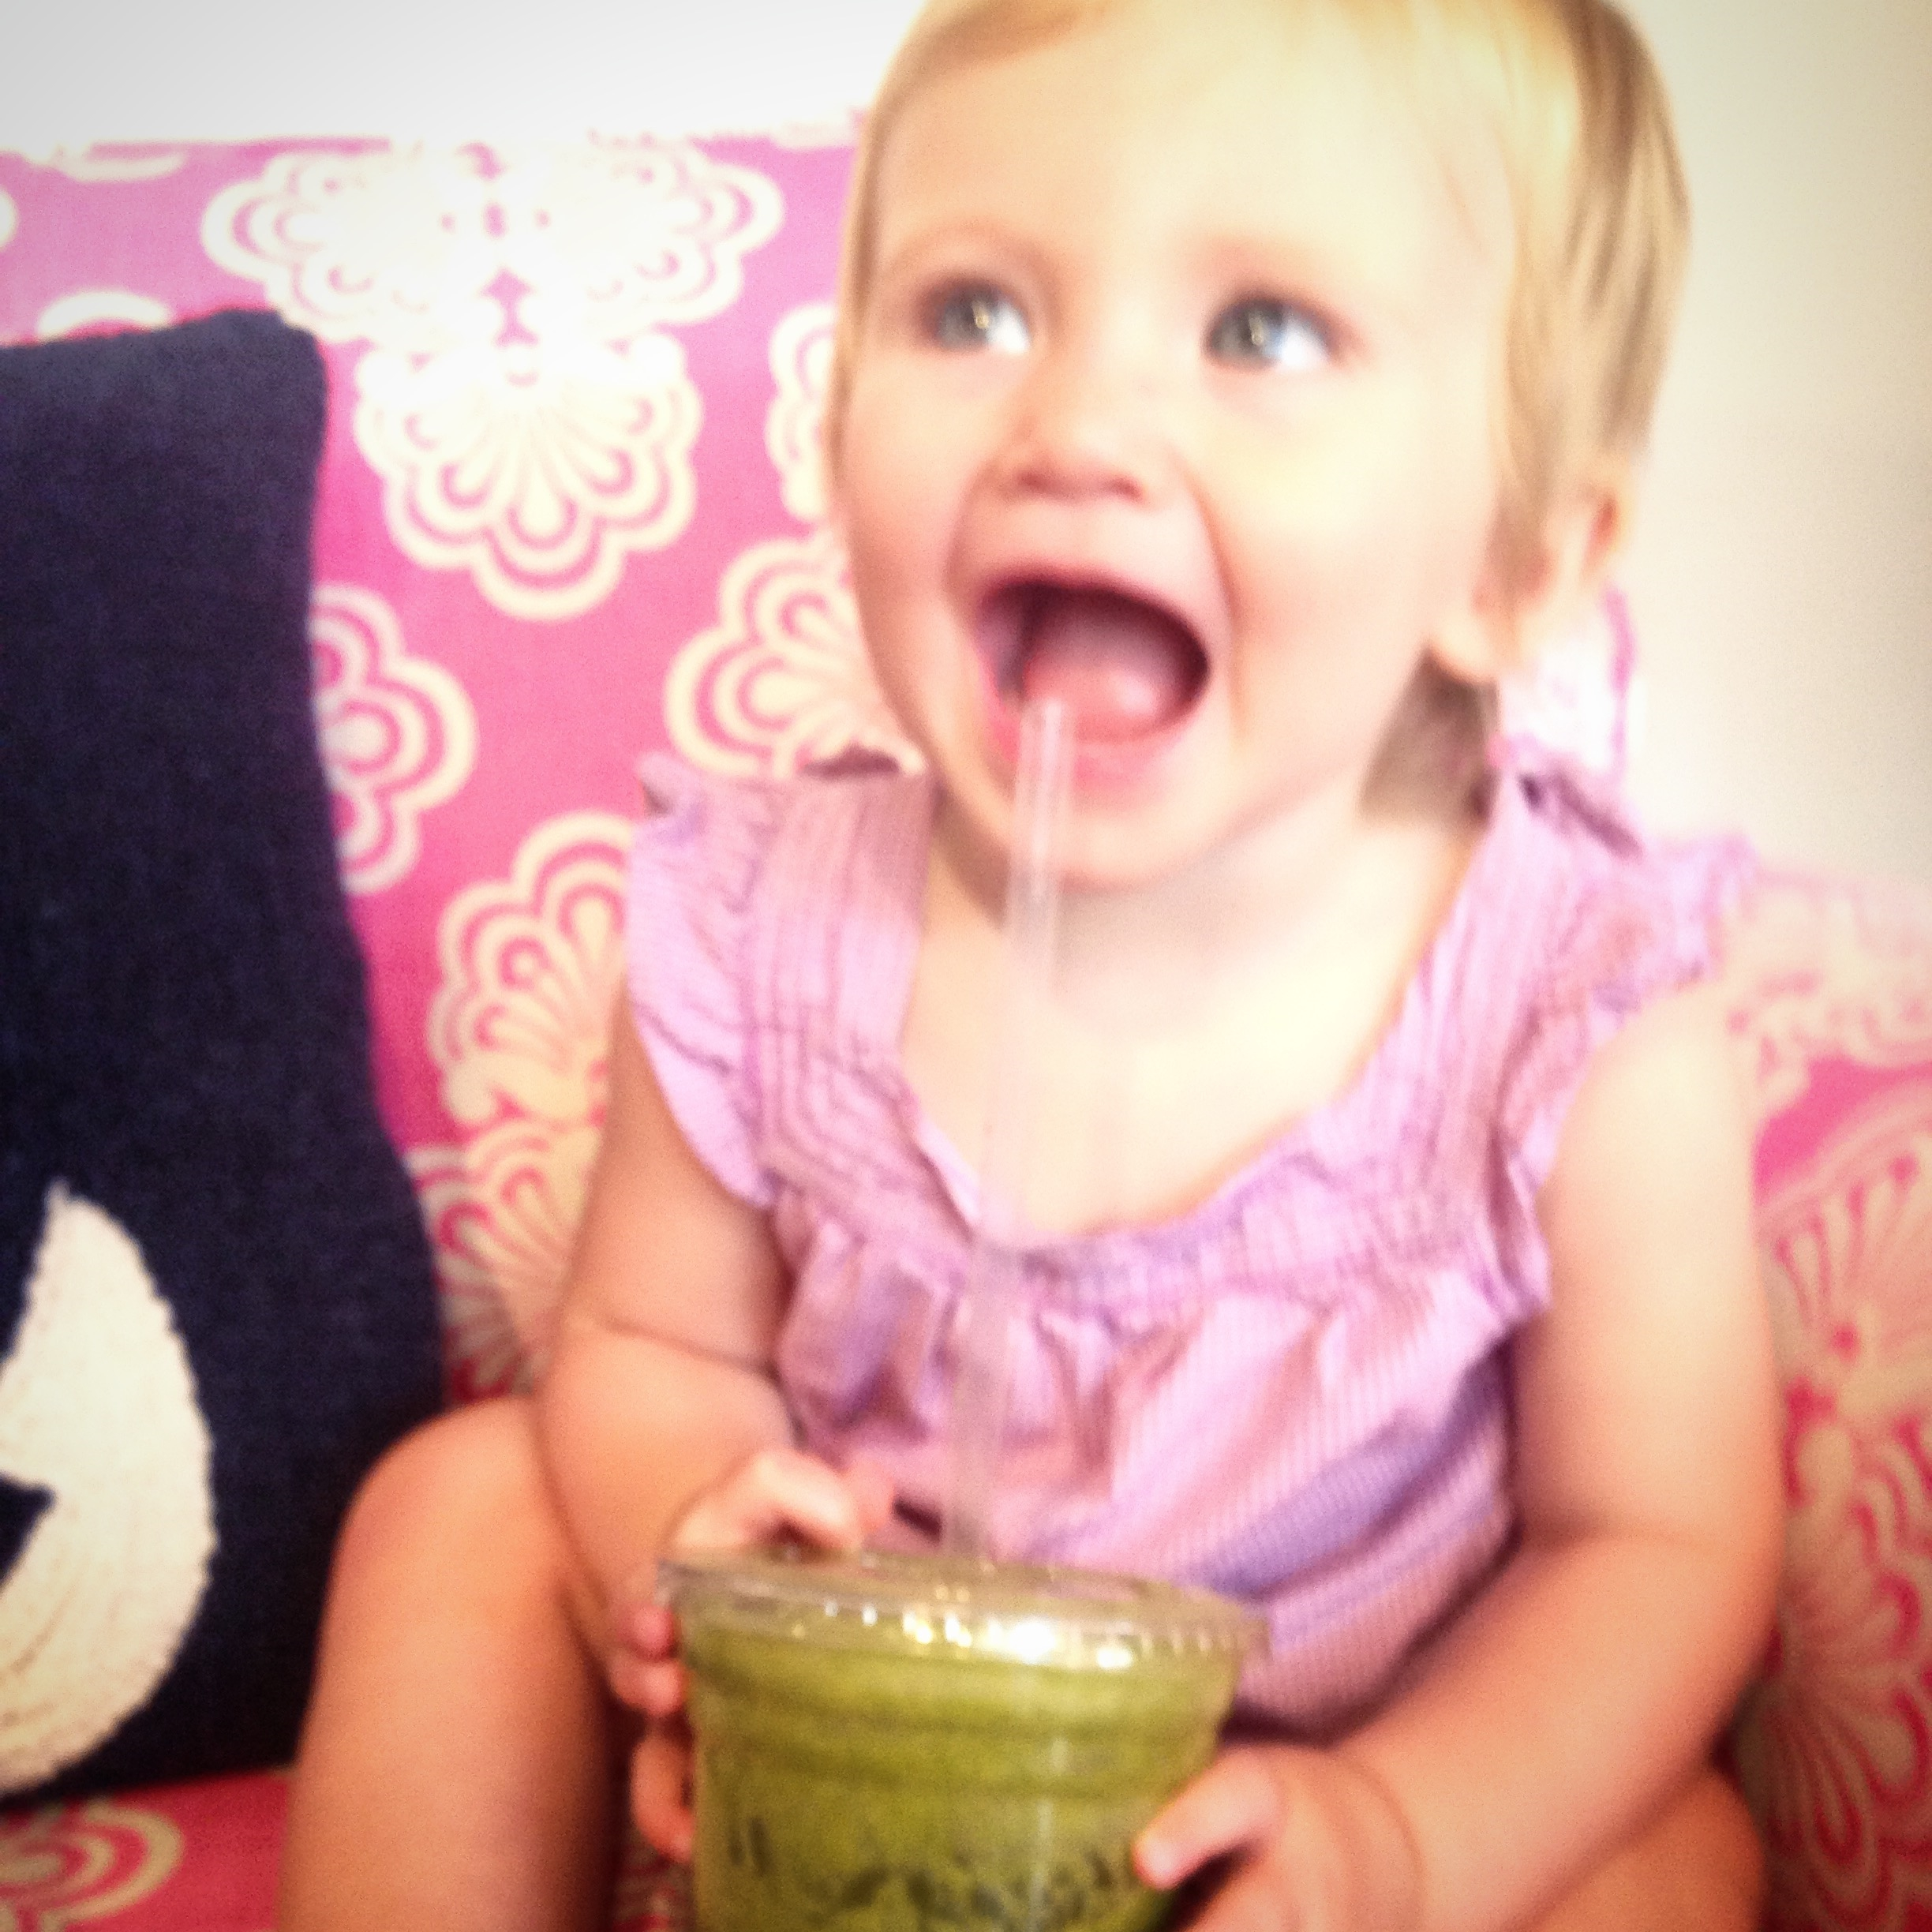 Green juice boosts mood and keeps you young!